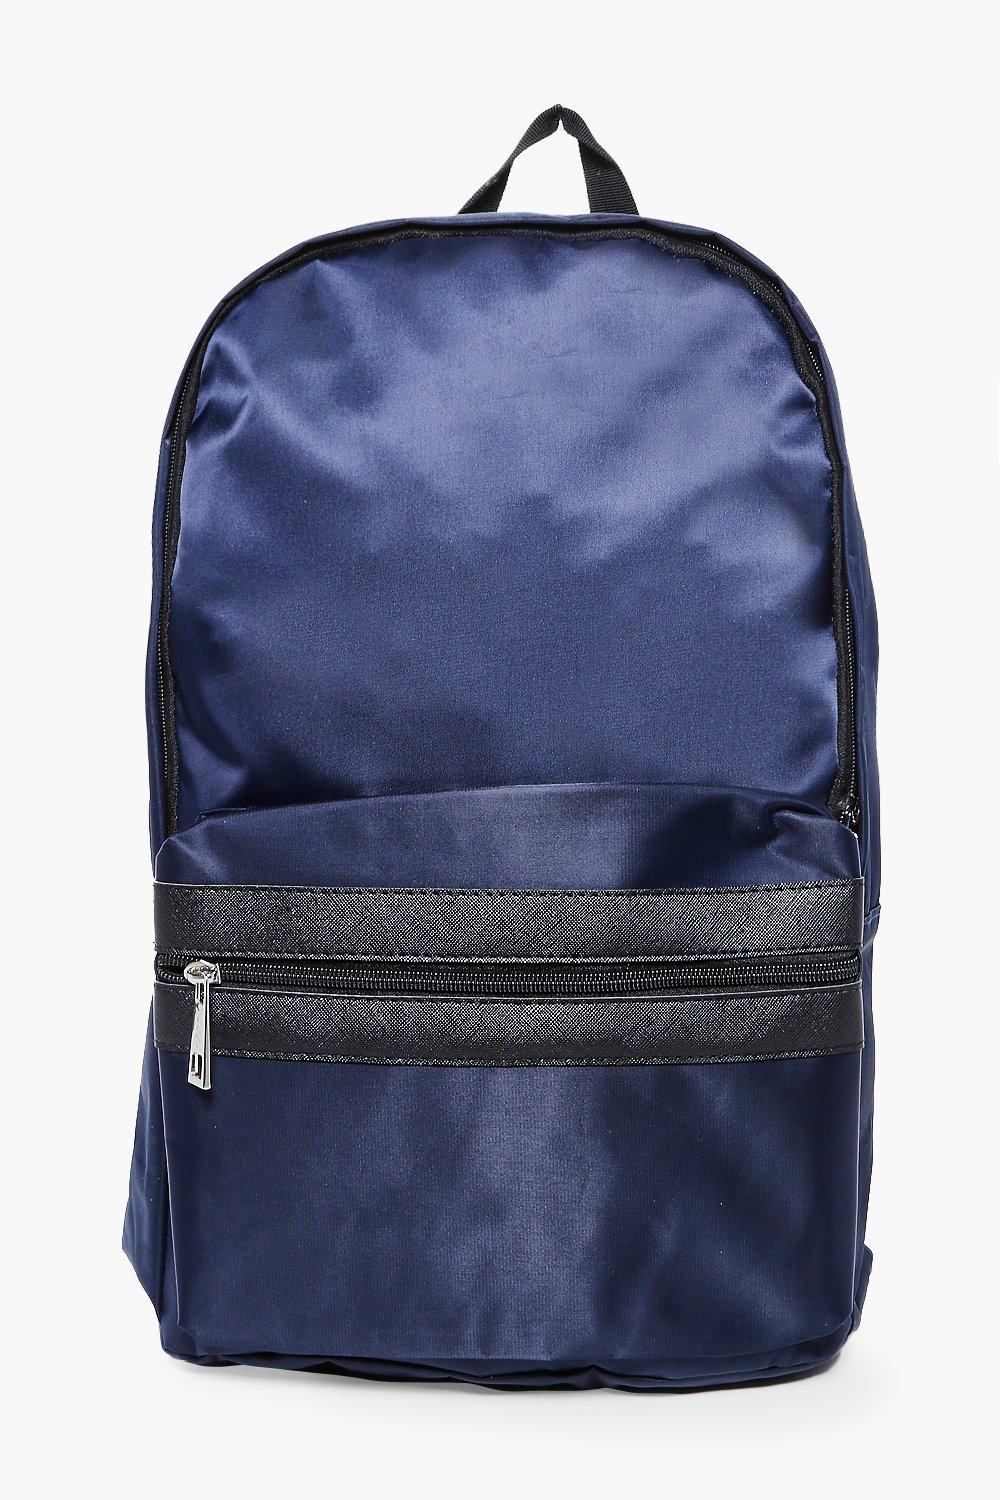 fb853bbe0 Navy Nylon Backpack With Contrast Trim - boohooMAN